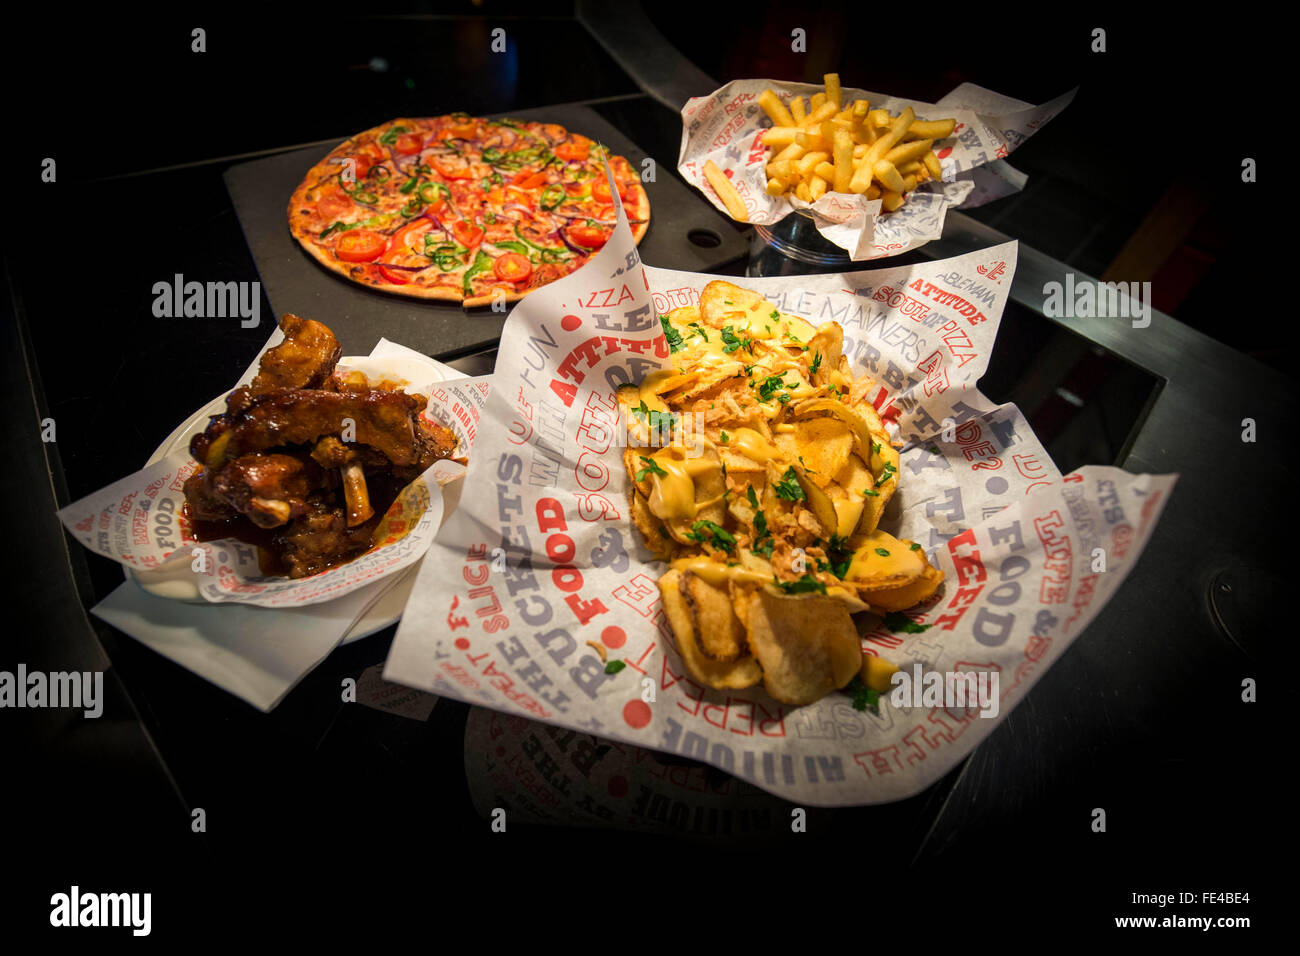 a selection of american diner style food in an english